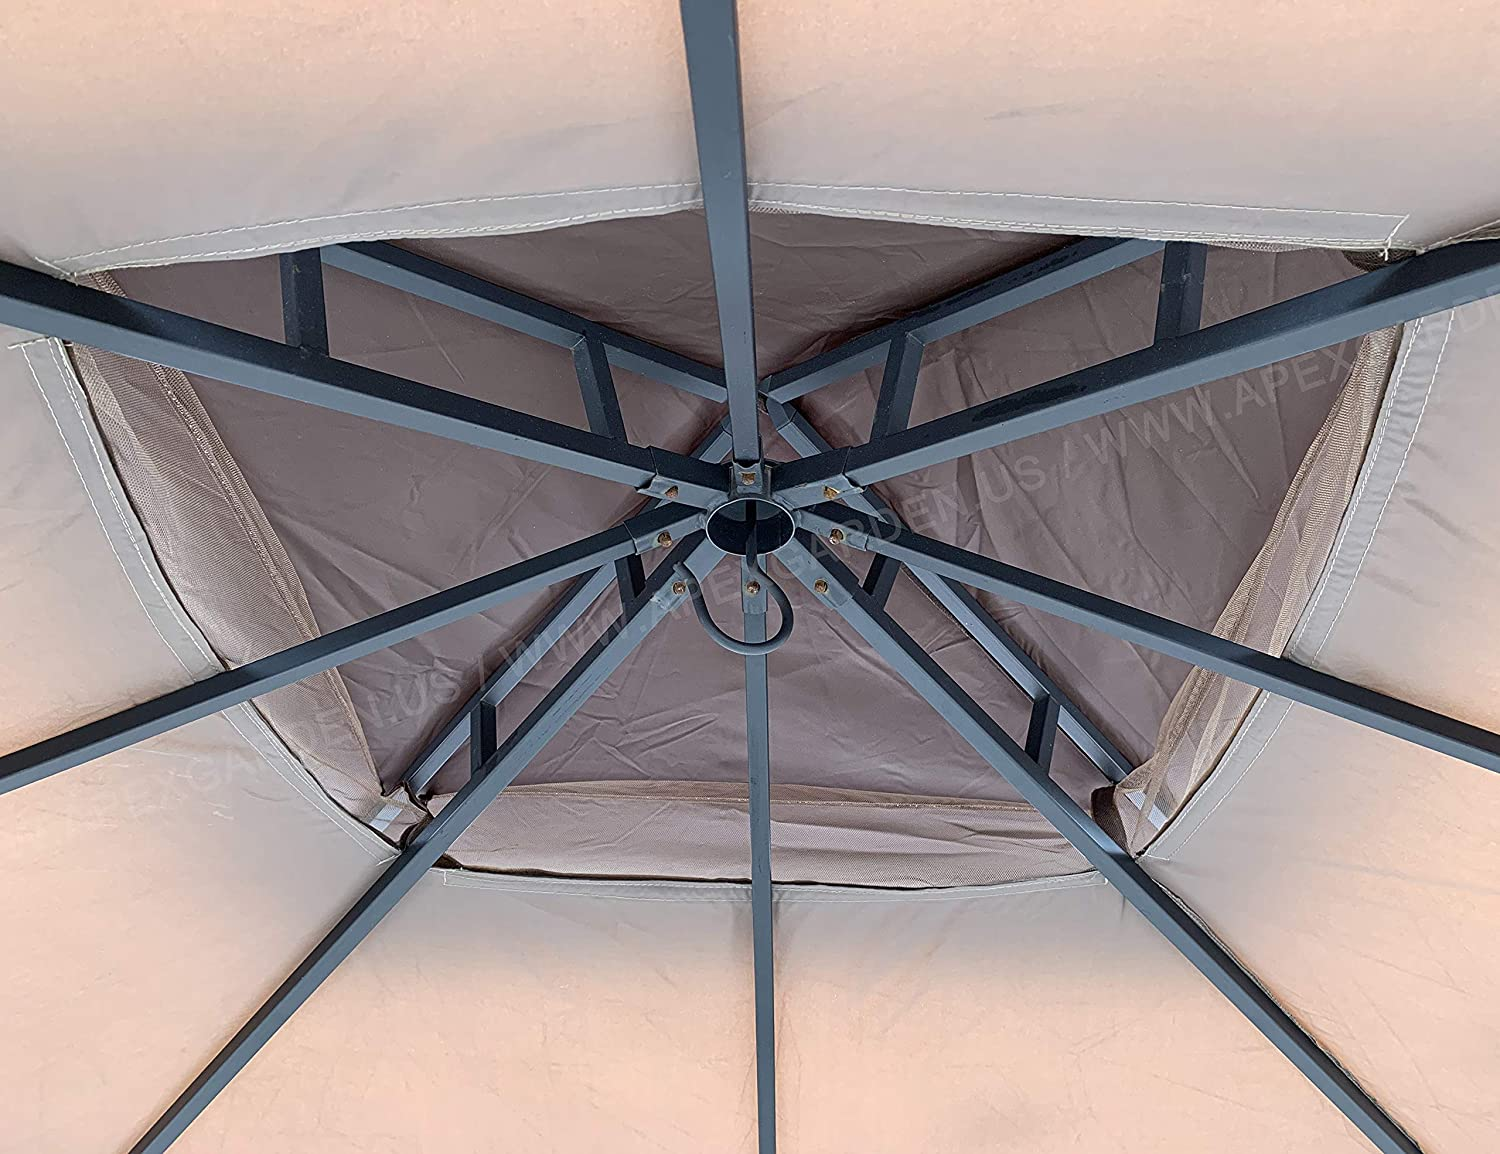 L-GZ375PST-3 APEX GARDEN Replacement Canopy Top for 8 x 8 Gazebo #L-GZ375PST